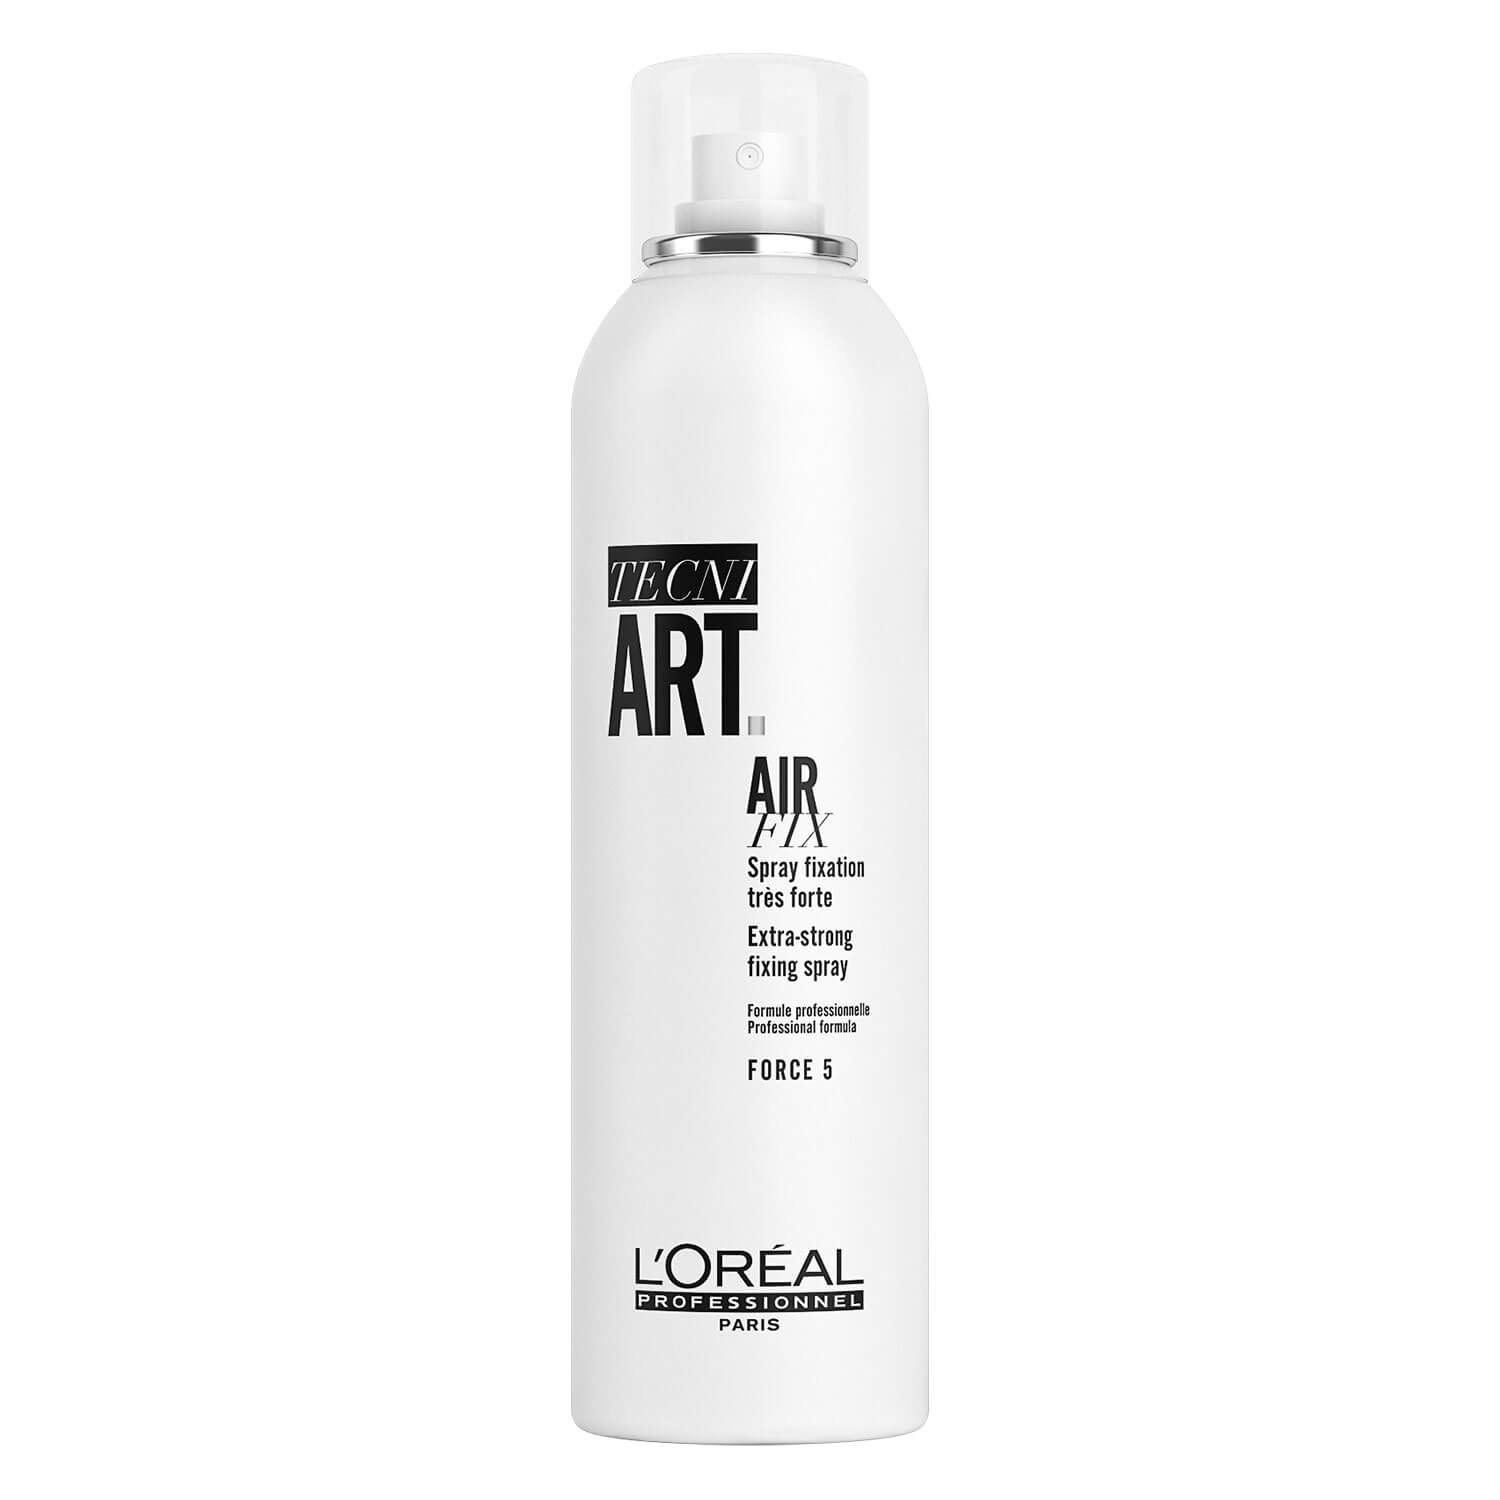 Tecni.art Essentials - Air Fix - 250ml